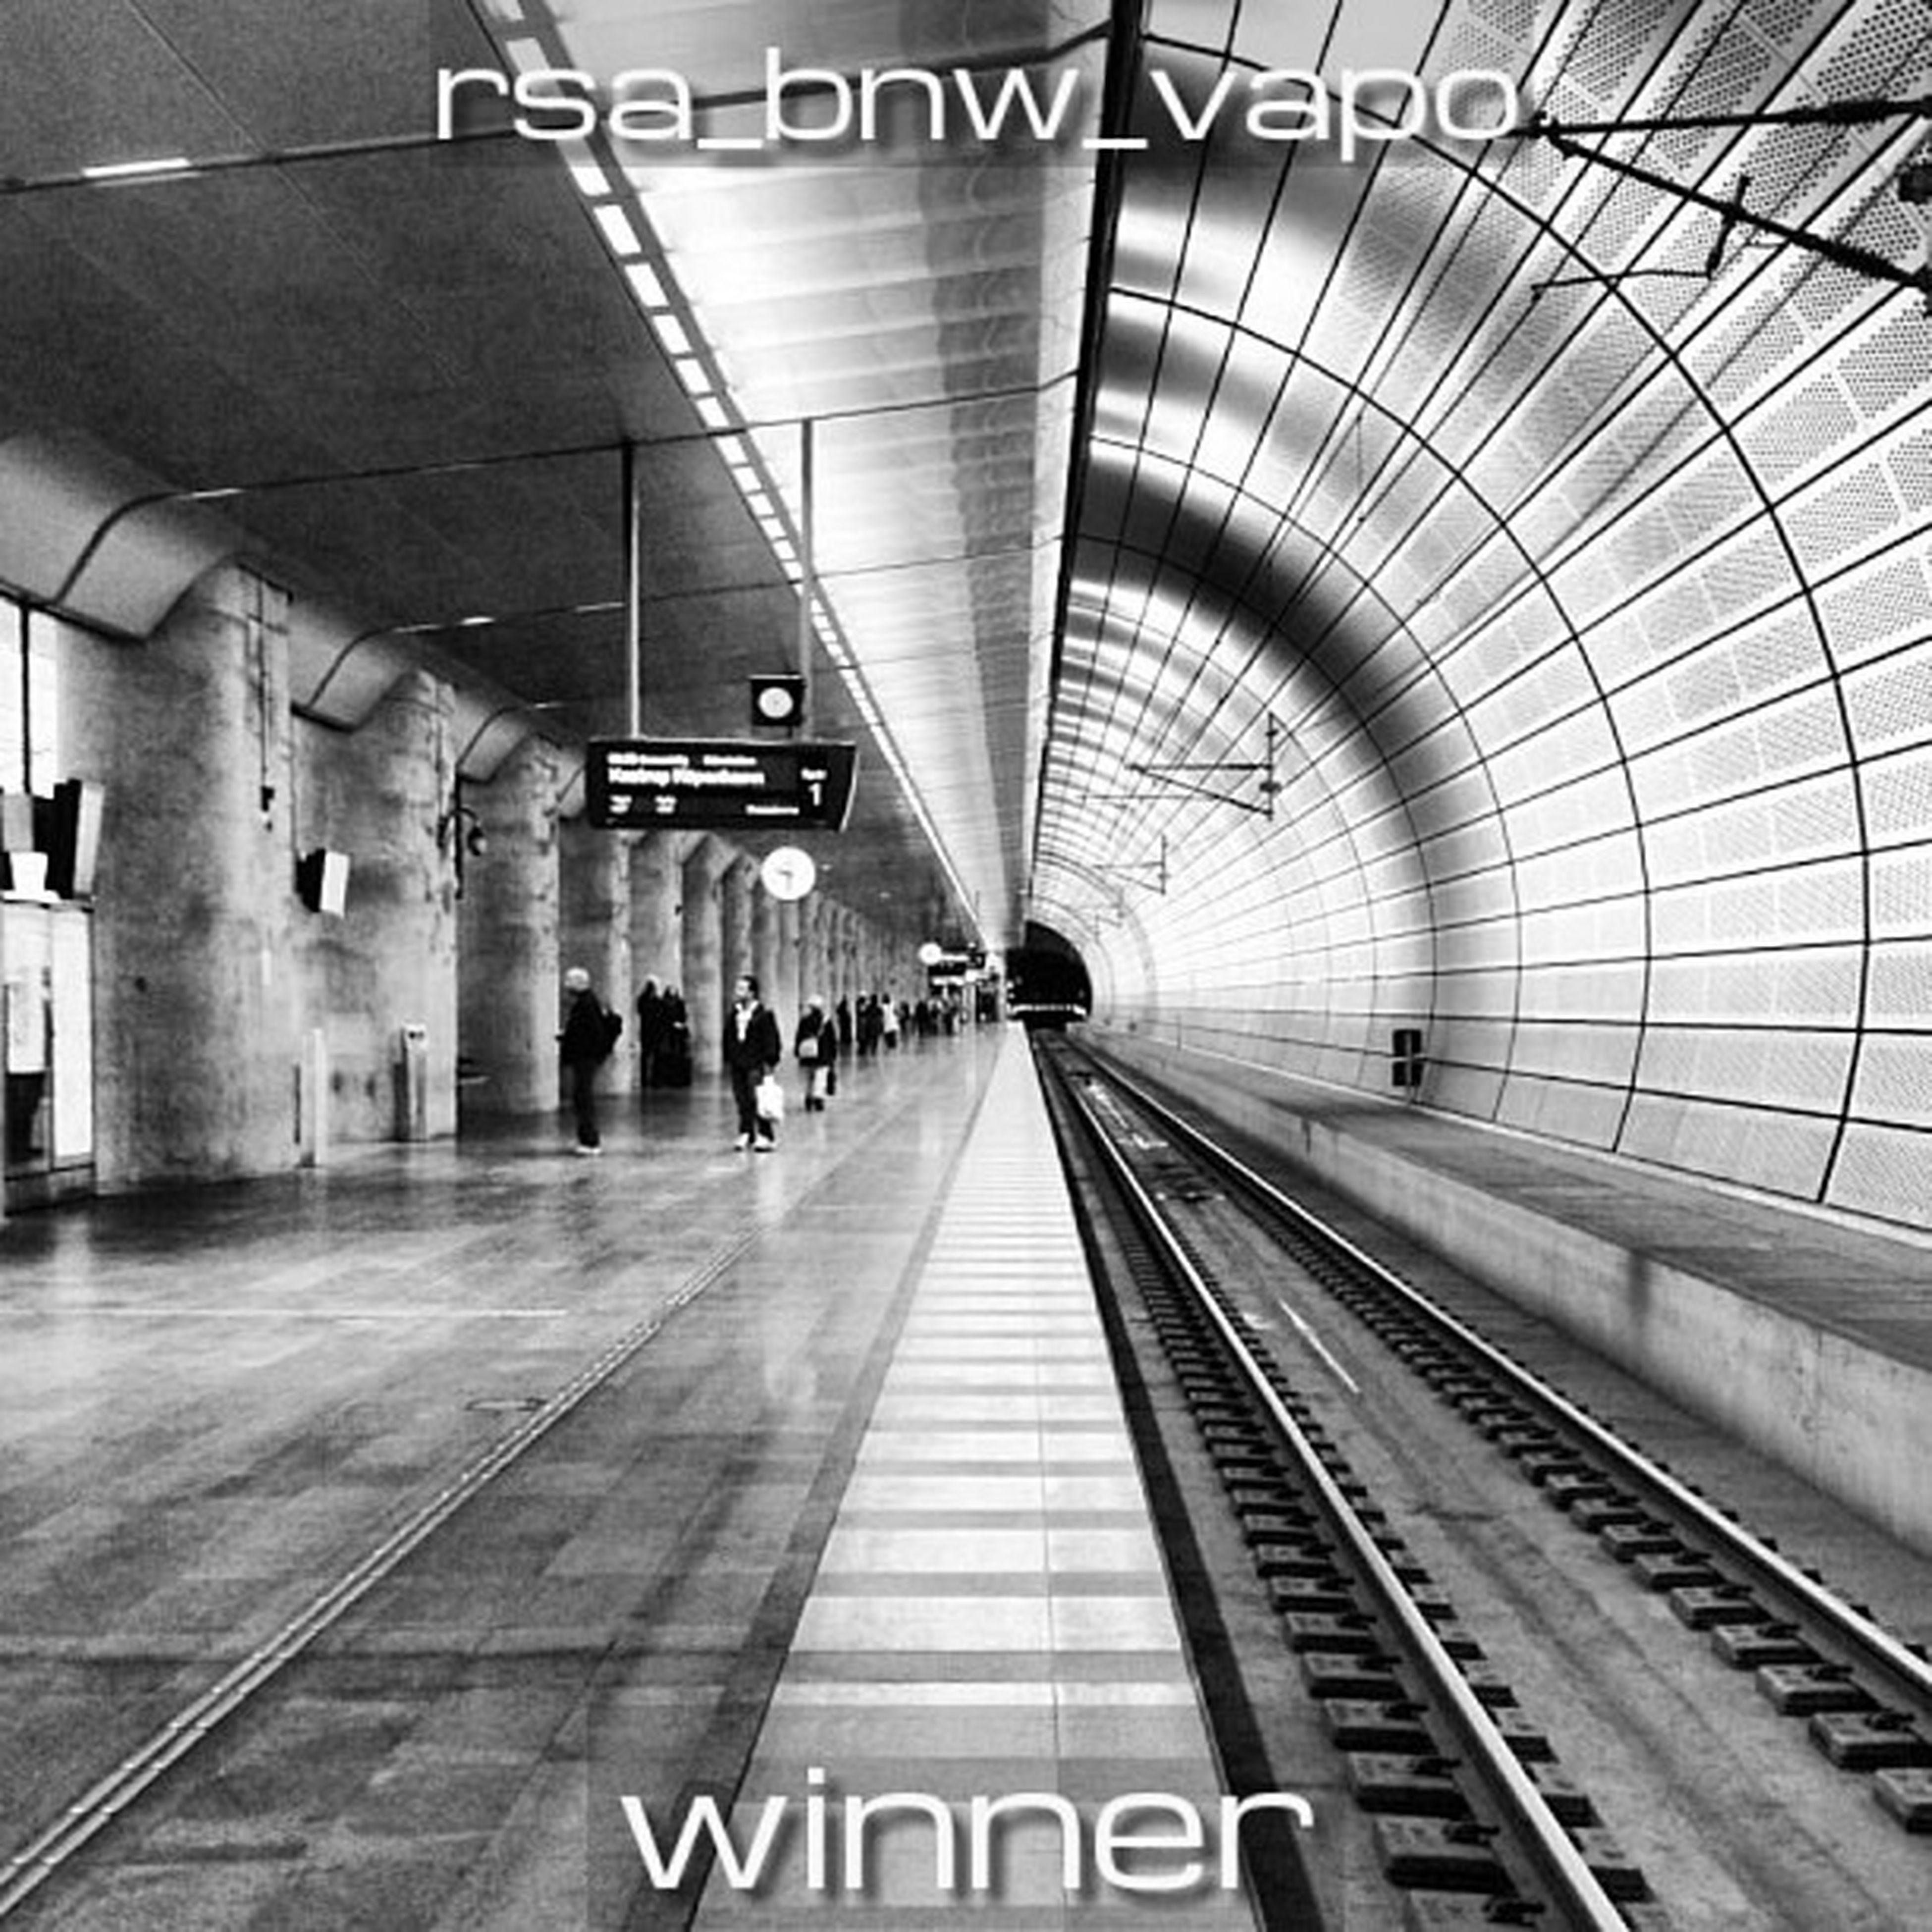 railroad station, rail transportation, railroad station platform, railroad track, transportation, public transportation, indoors, subway station, architecture, built structure, the way forward, subway, transportation building - type of building, ceiling, diminishing perspective, station, train - vehicle, travel, illuminated, text